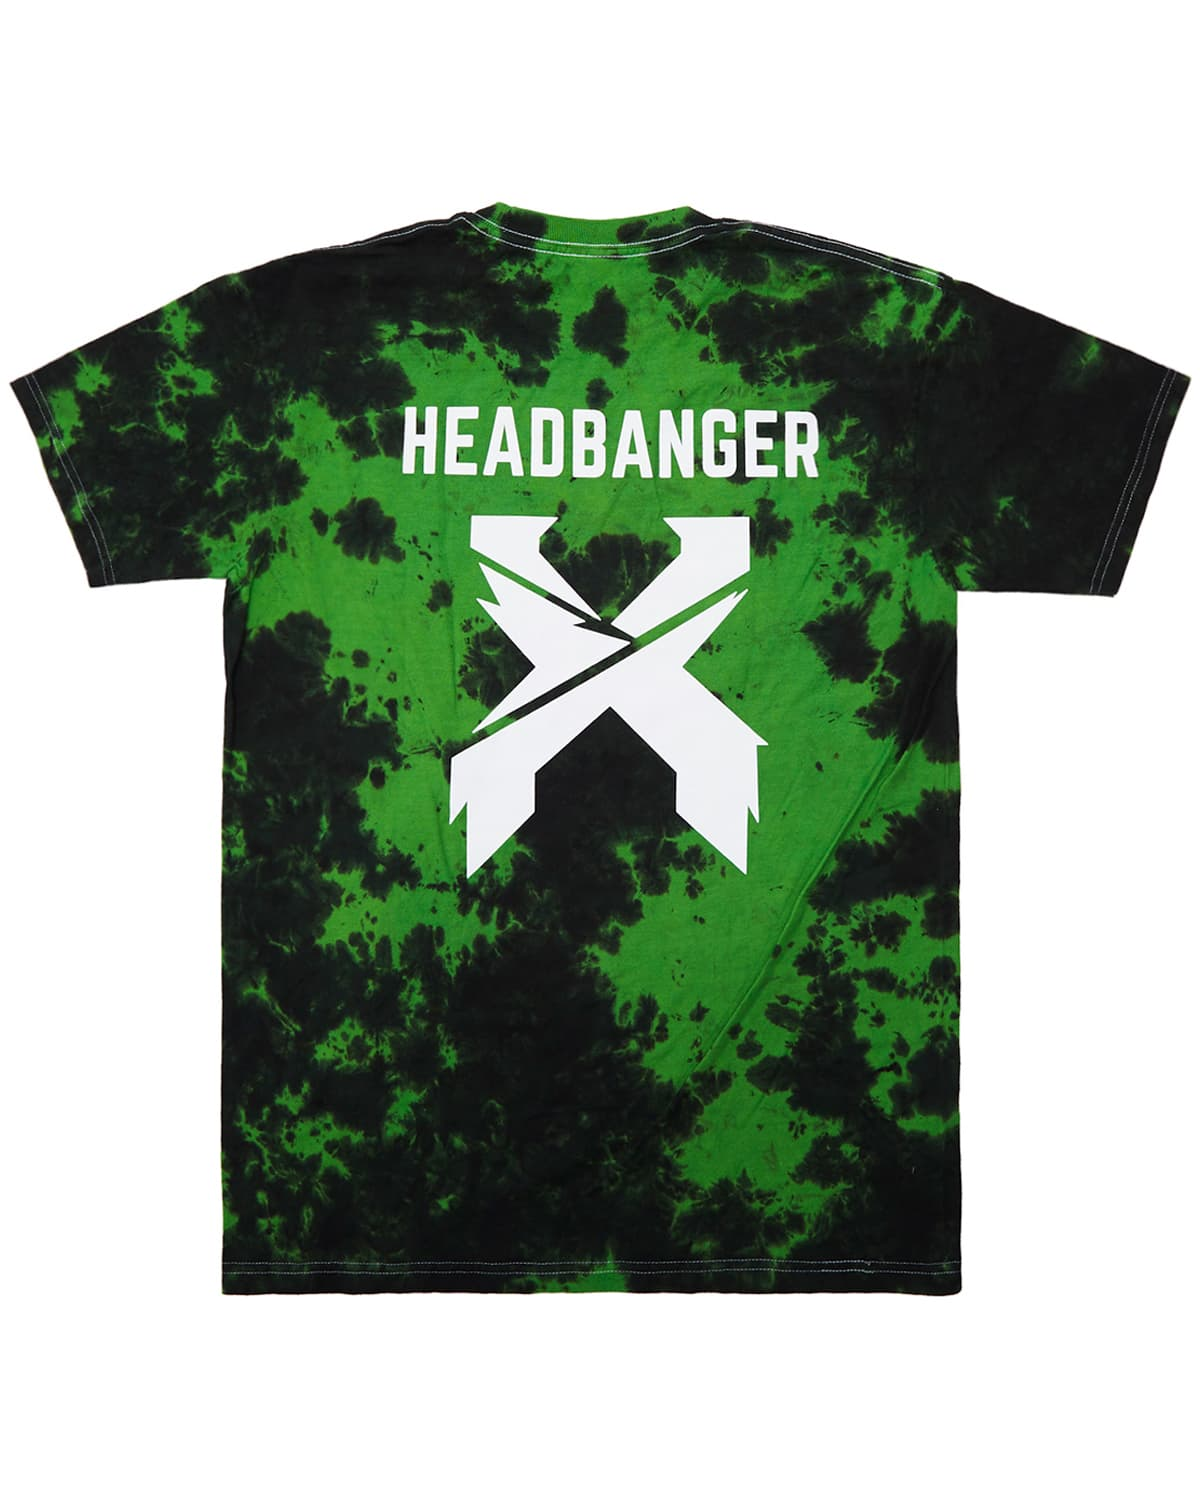 Excision 'Headbanger' Unisex Tie-Dye T-Shirt - Green